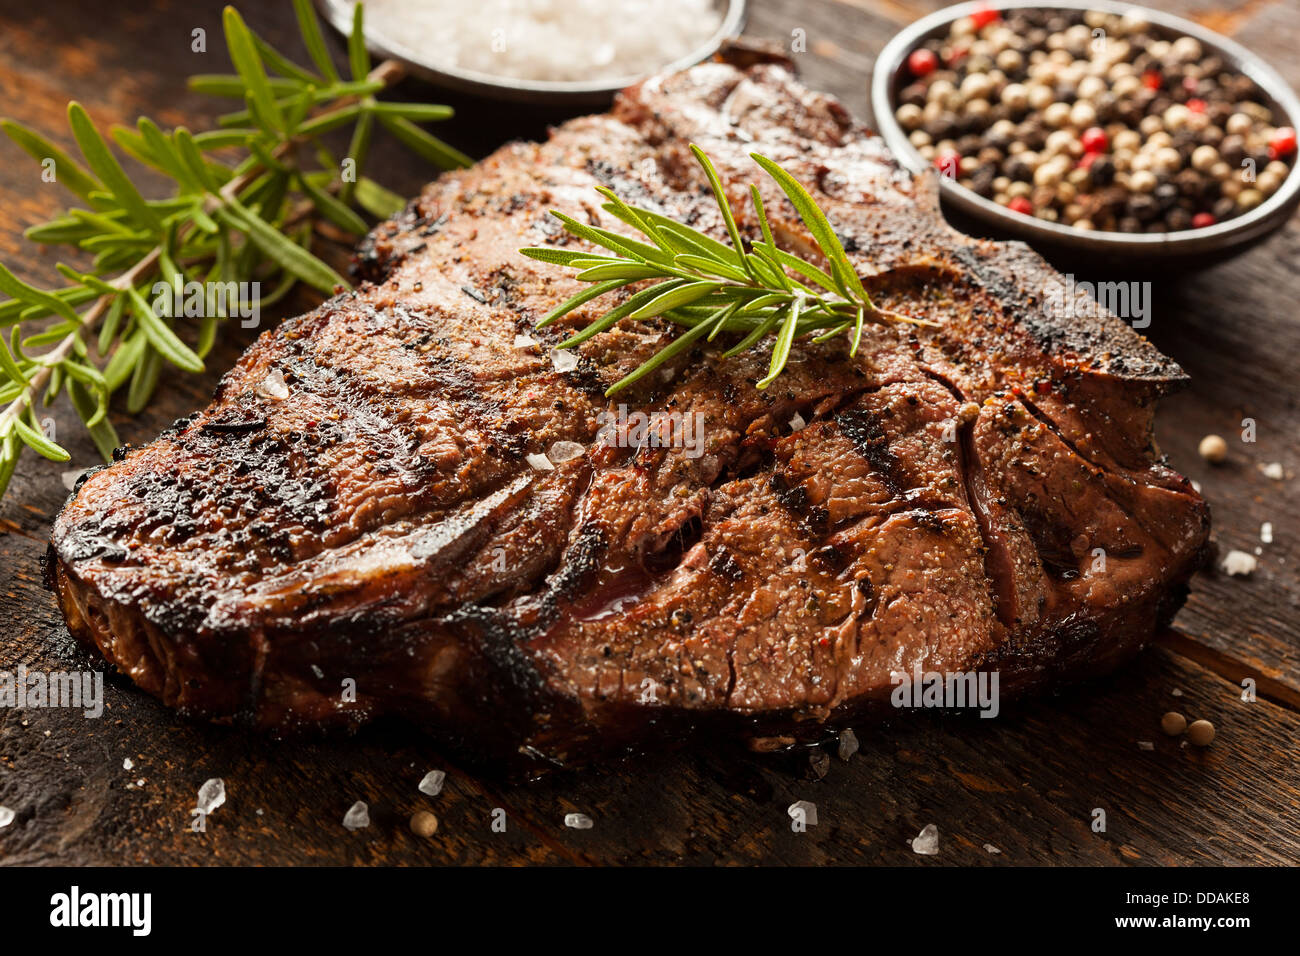 Grilled BBQ T-Bone Steak with Fresh Rosemary - Stock Image